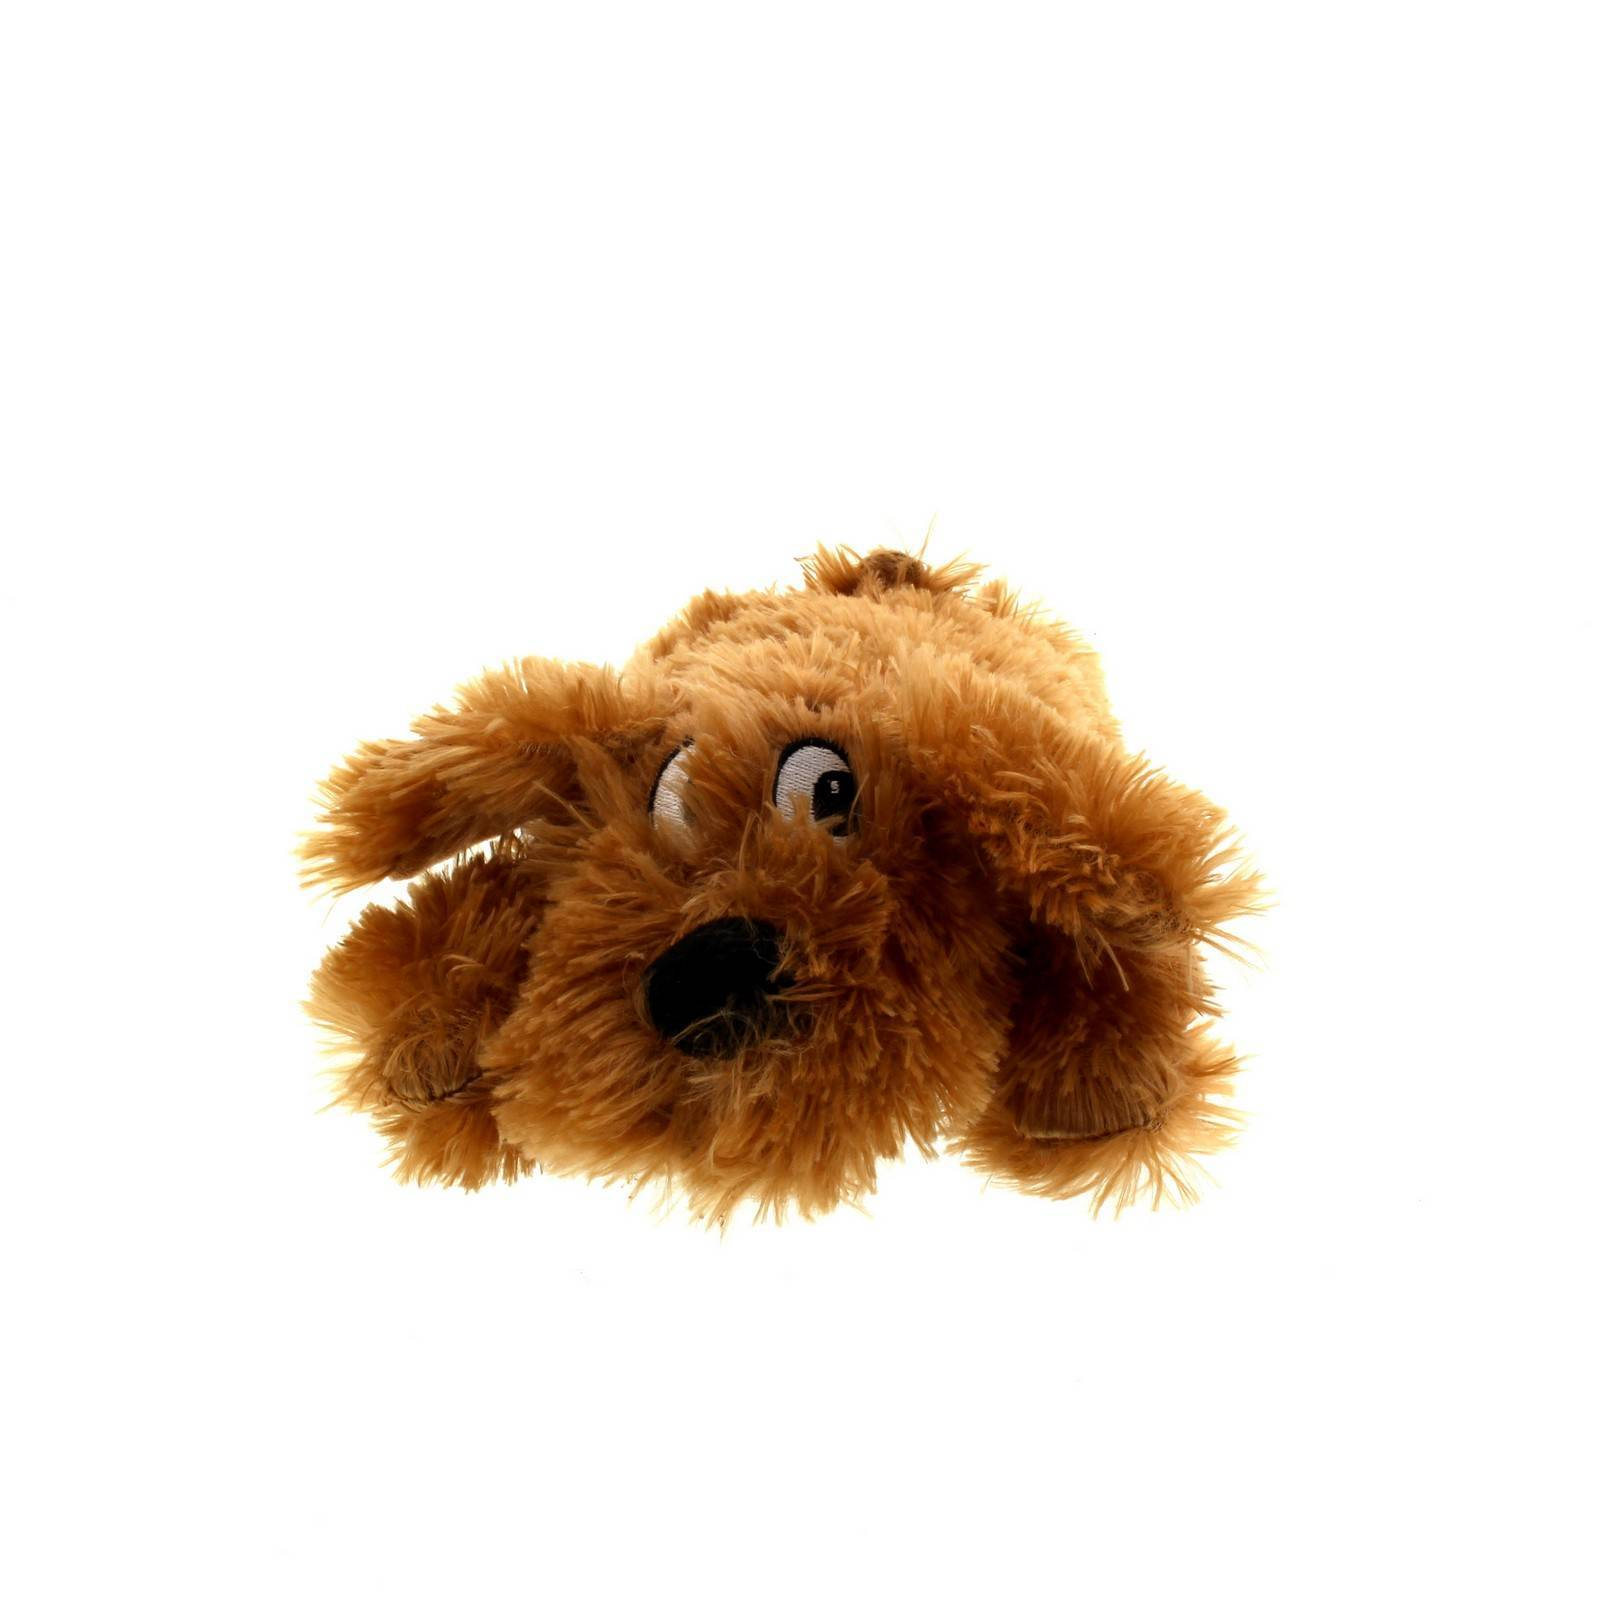 Muff Pup Plush Dog Toy Masterpet Fun Play Interactive Cuddly